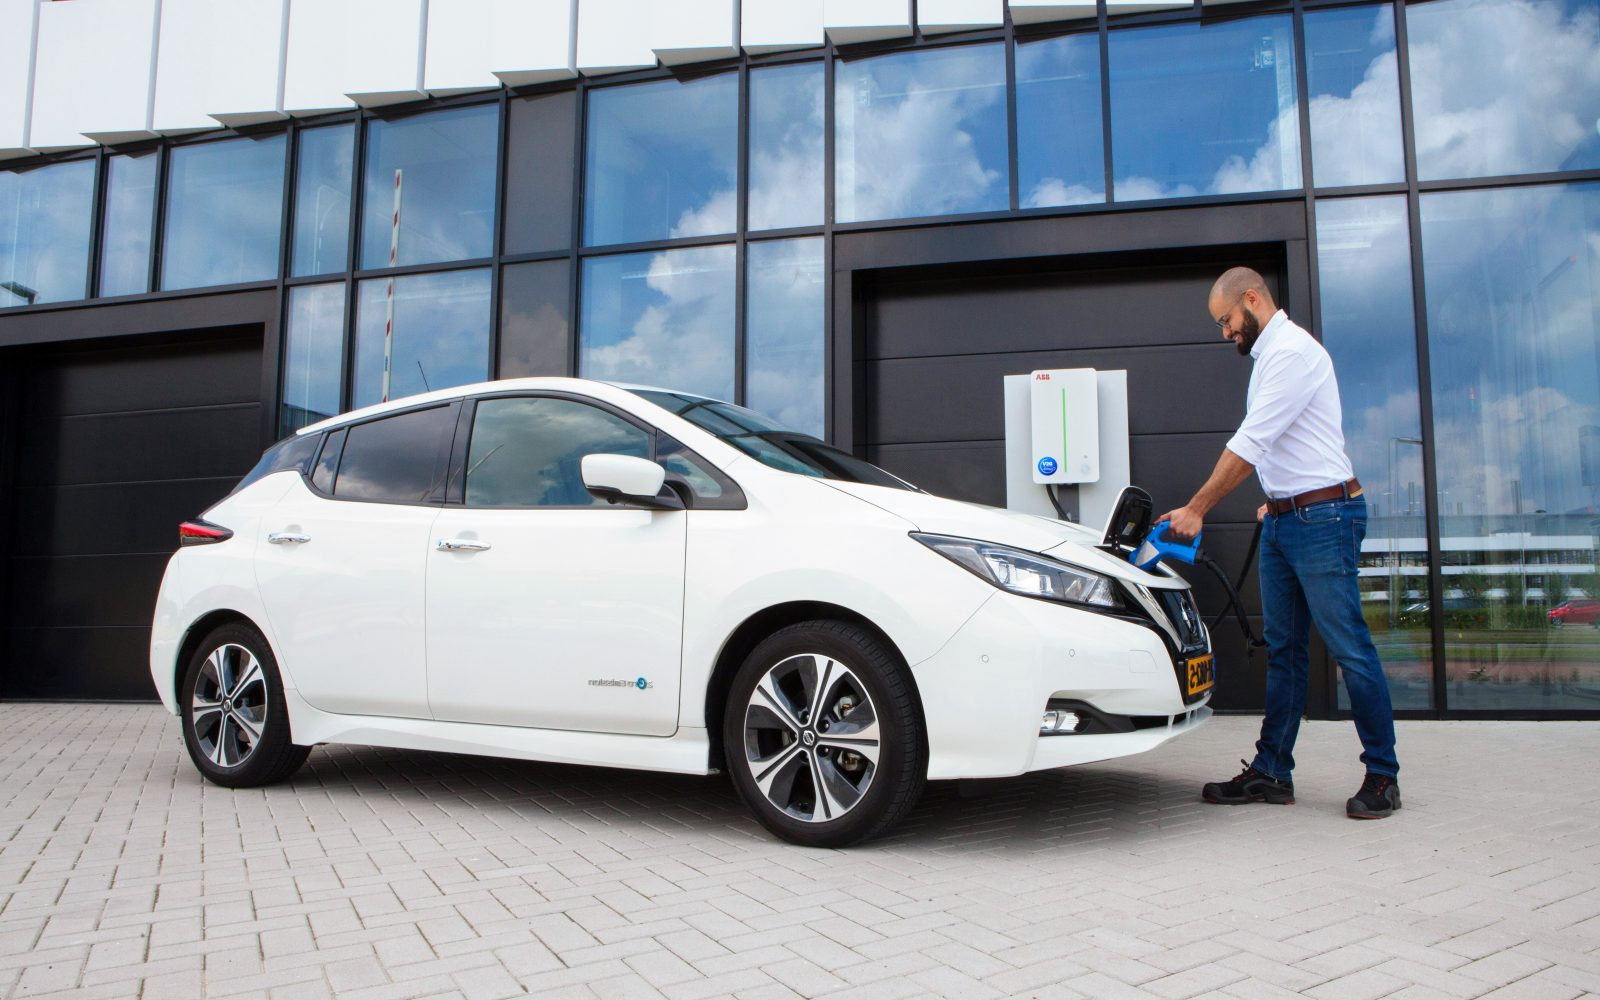 The V2G offering is to be available to fleet owners of Nissan's LEAF and e-NV200 models. Image: EDF